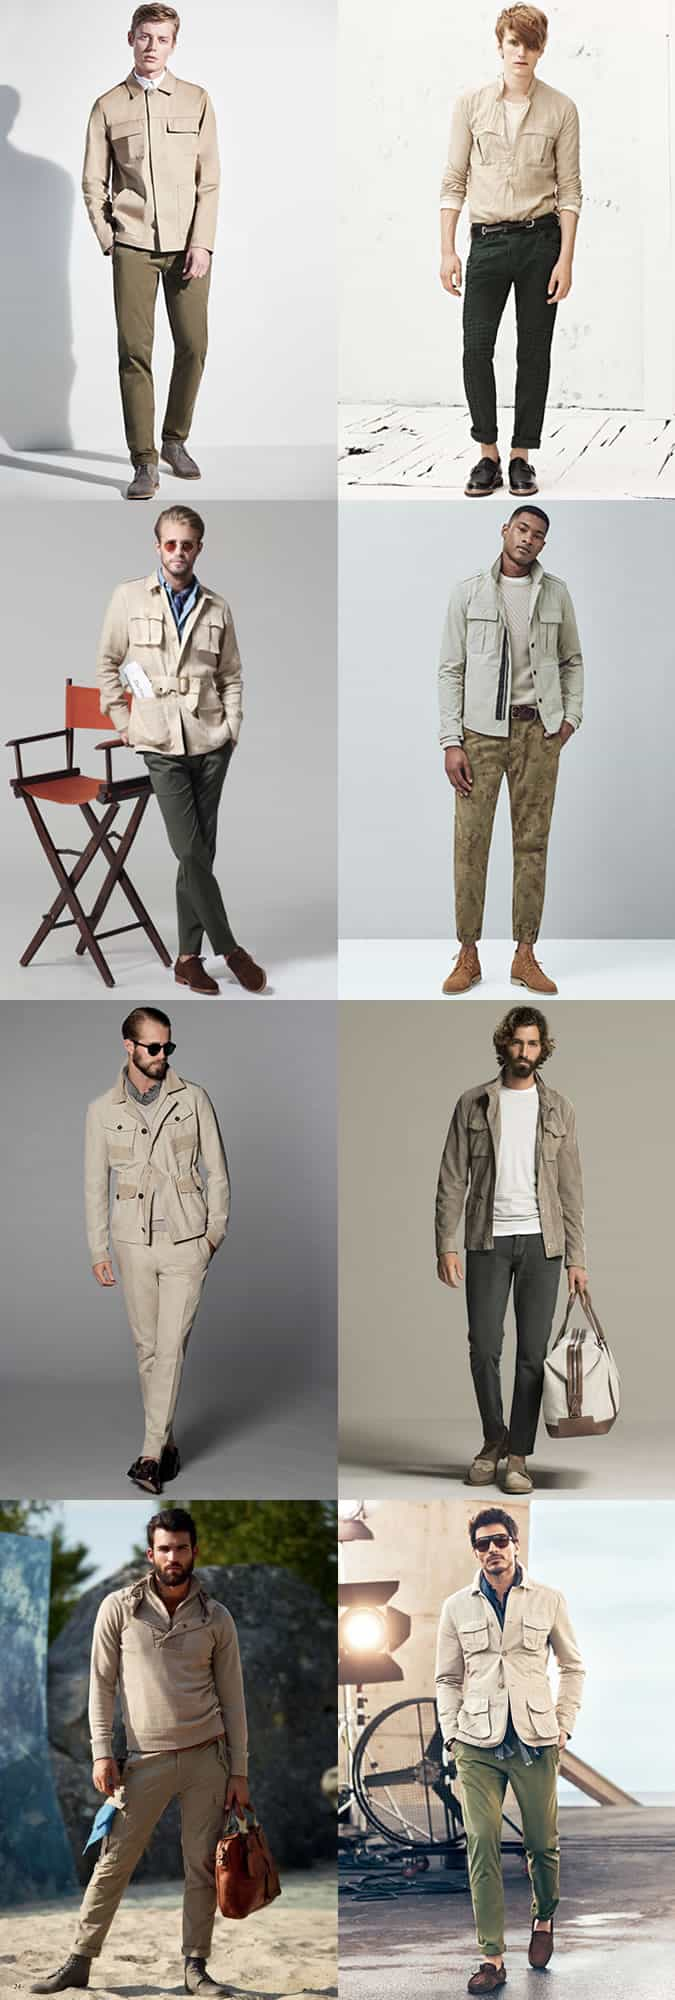 Men's Safari-inspired Outfit Inspiration Lookbook